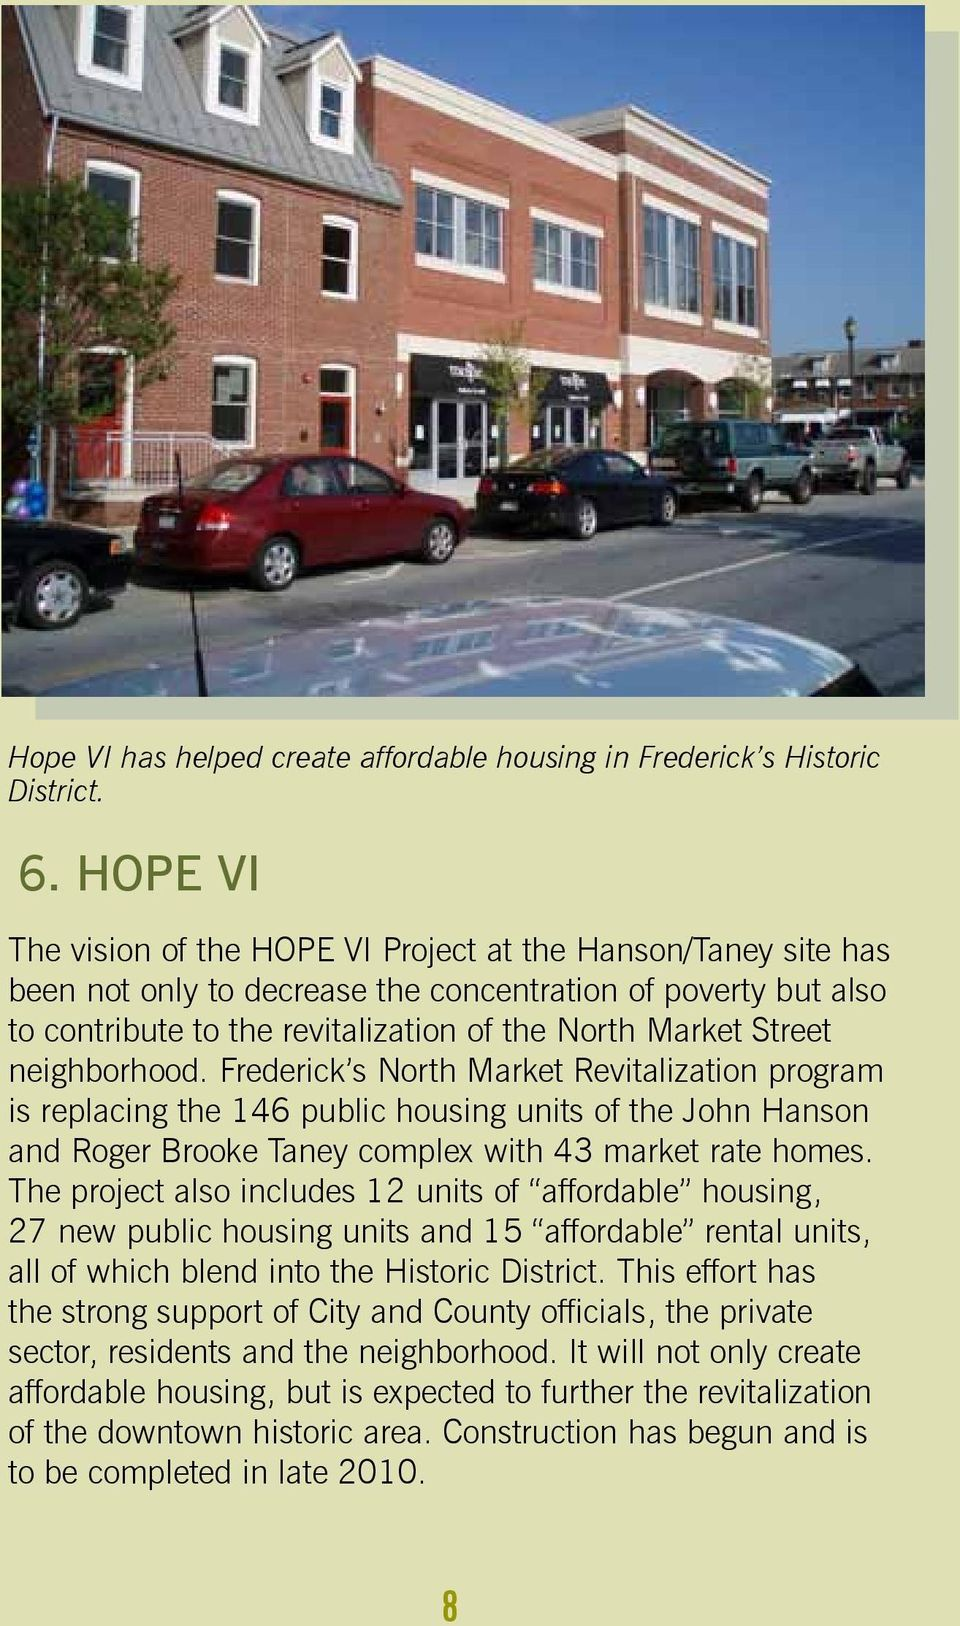 neighborhood. Frederick s North Market Revitalization program is replacing the 146 public housing units of the John Hanson and Roger Brooke Taney complex with 43 market rate homes.